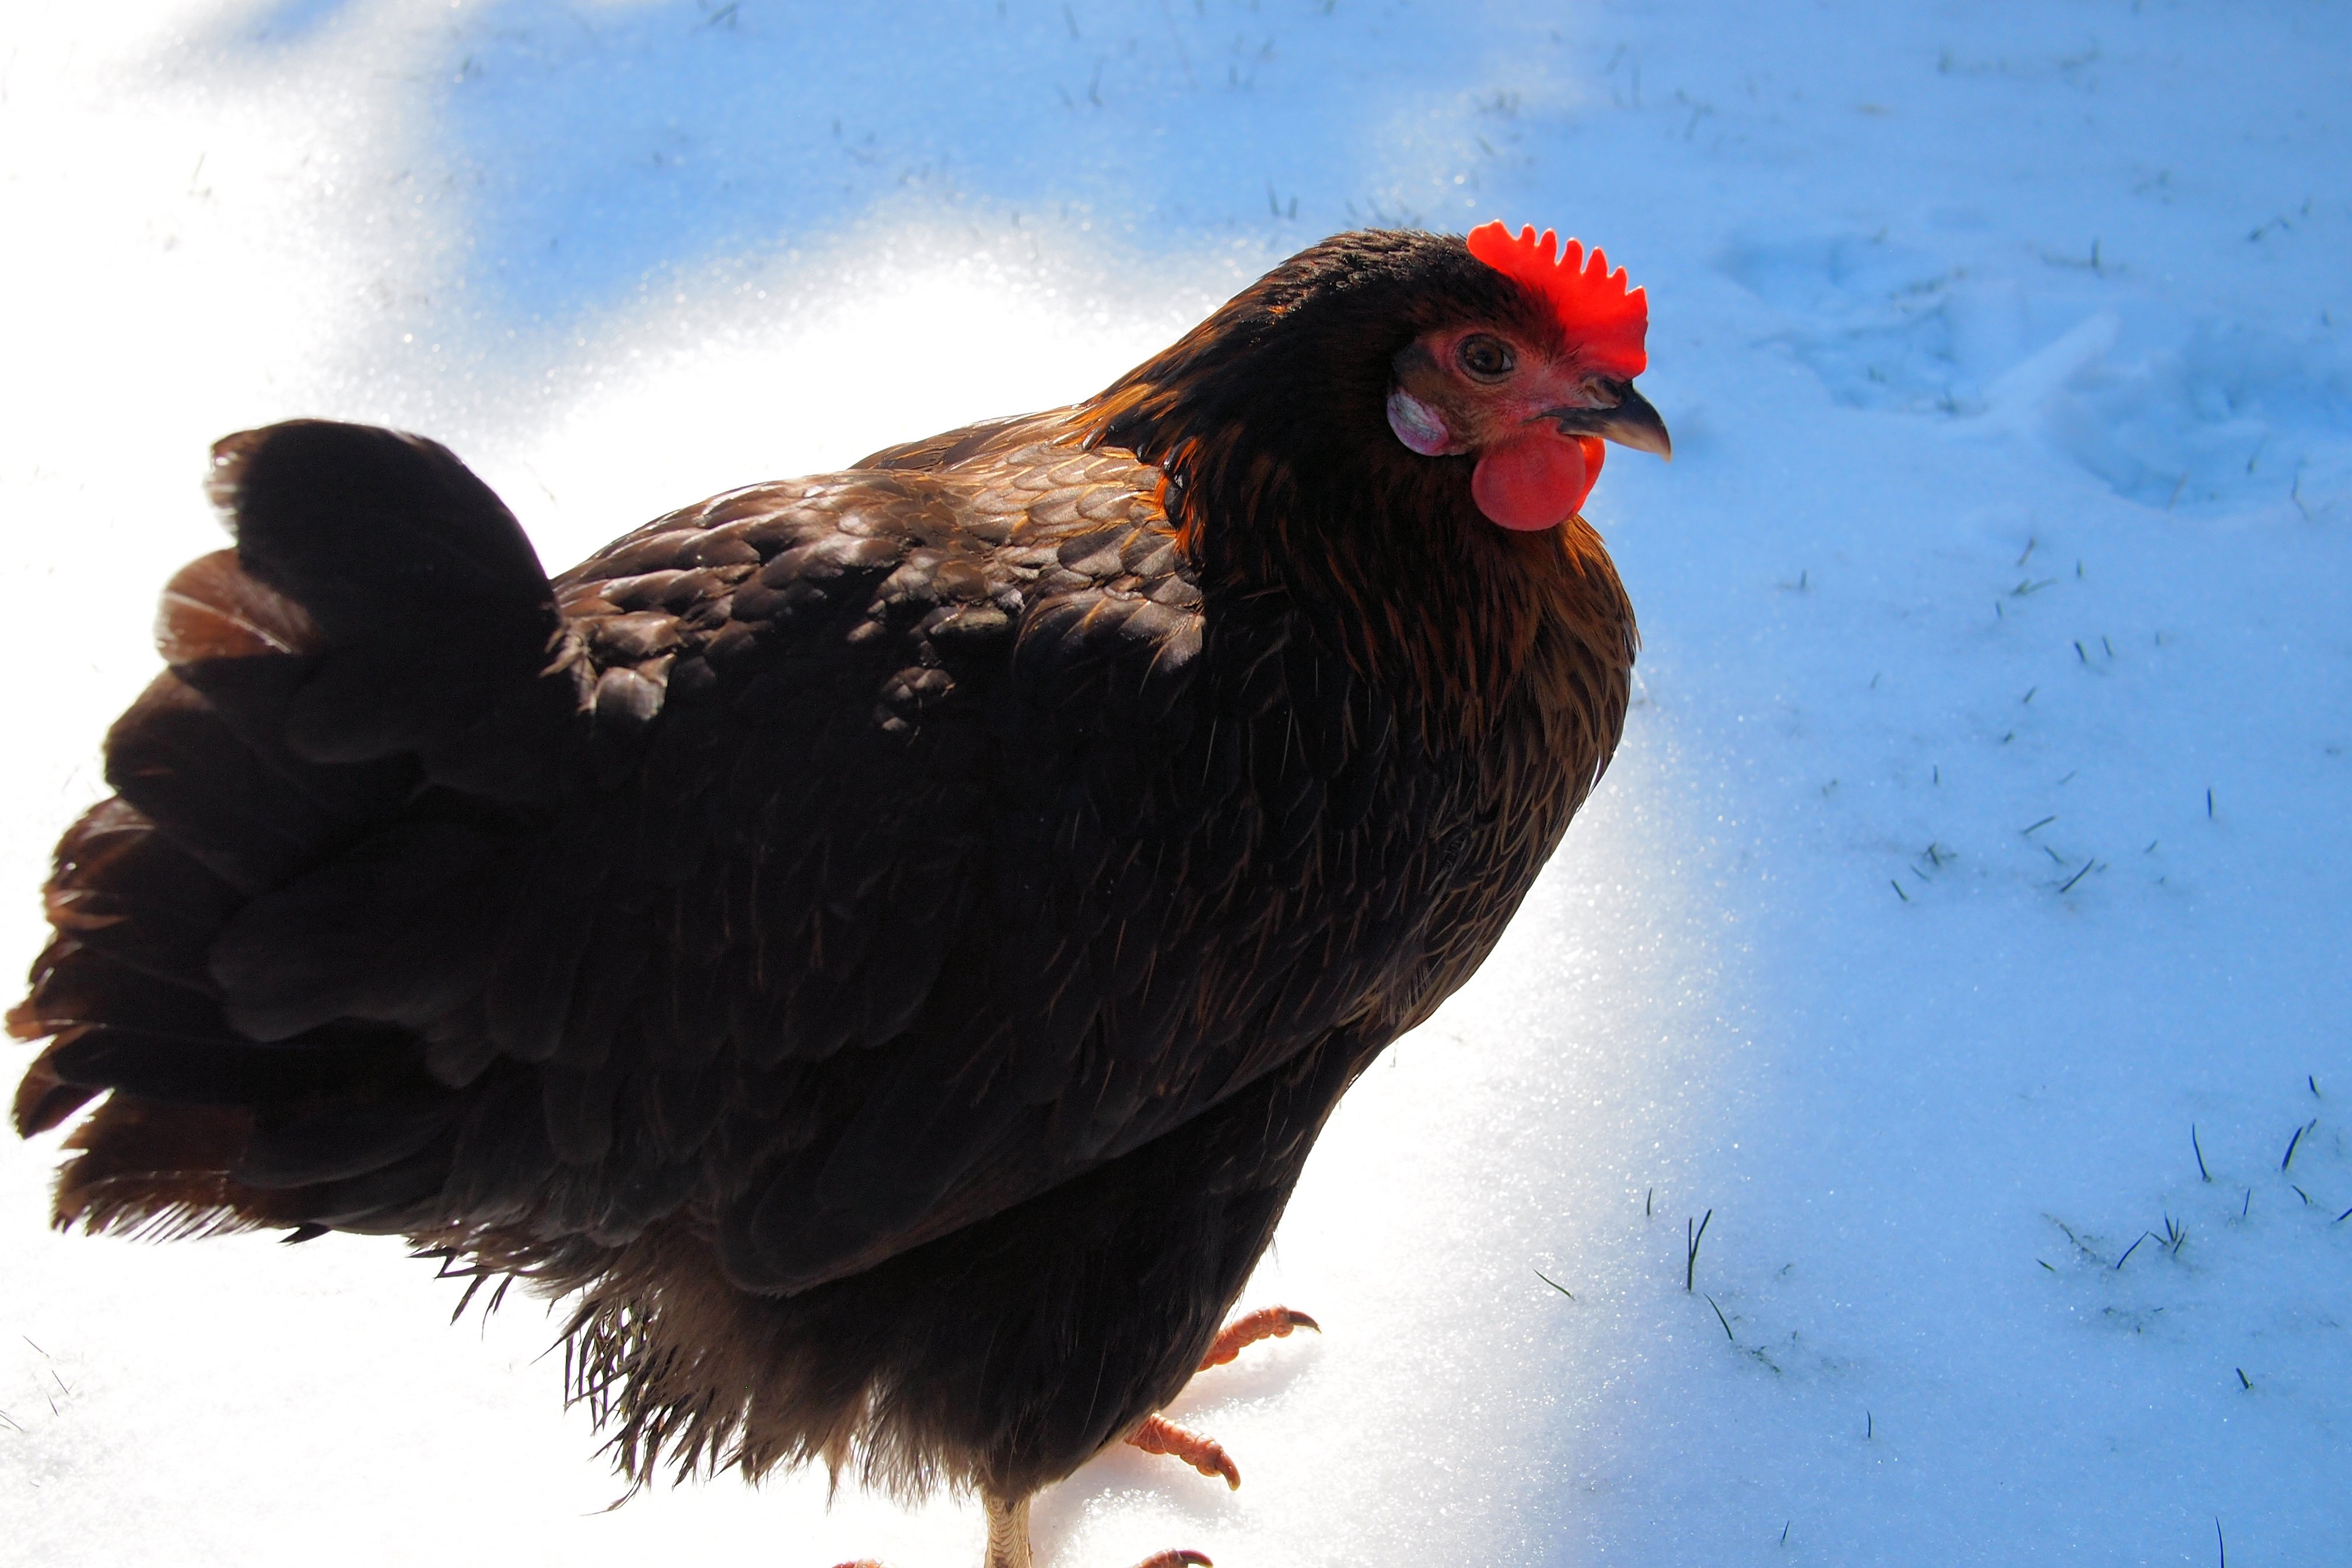 Deirdre my speckled hen in the snow!